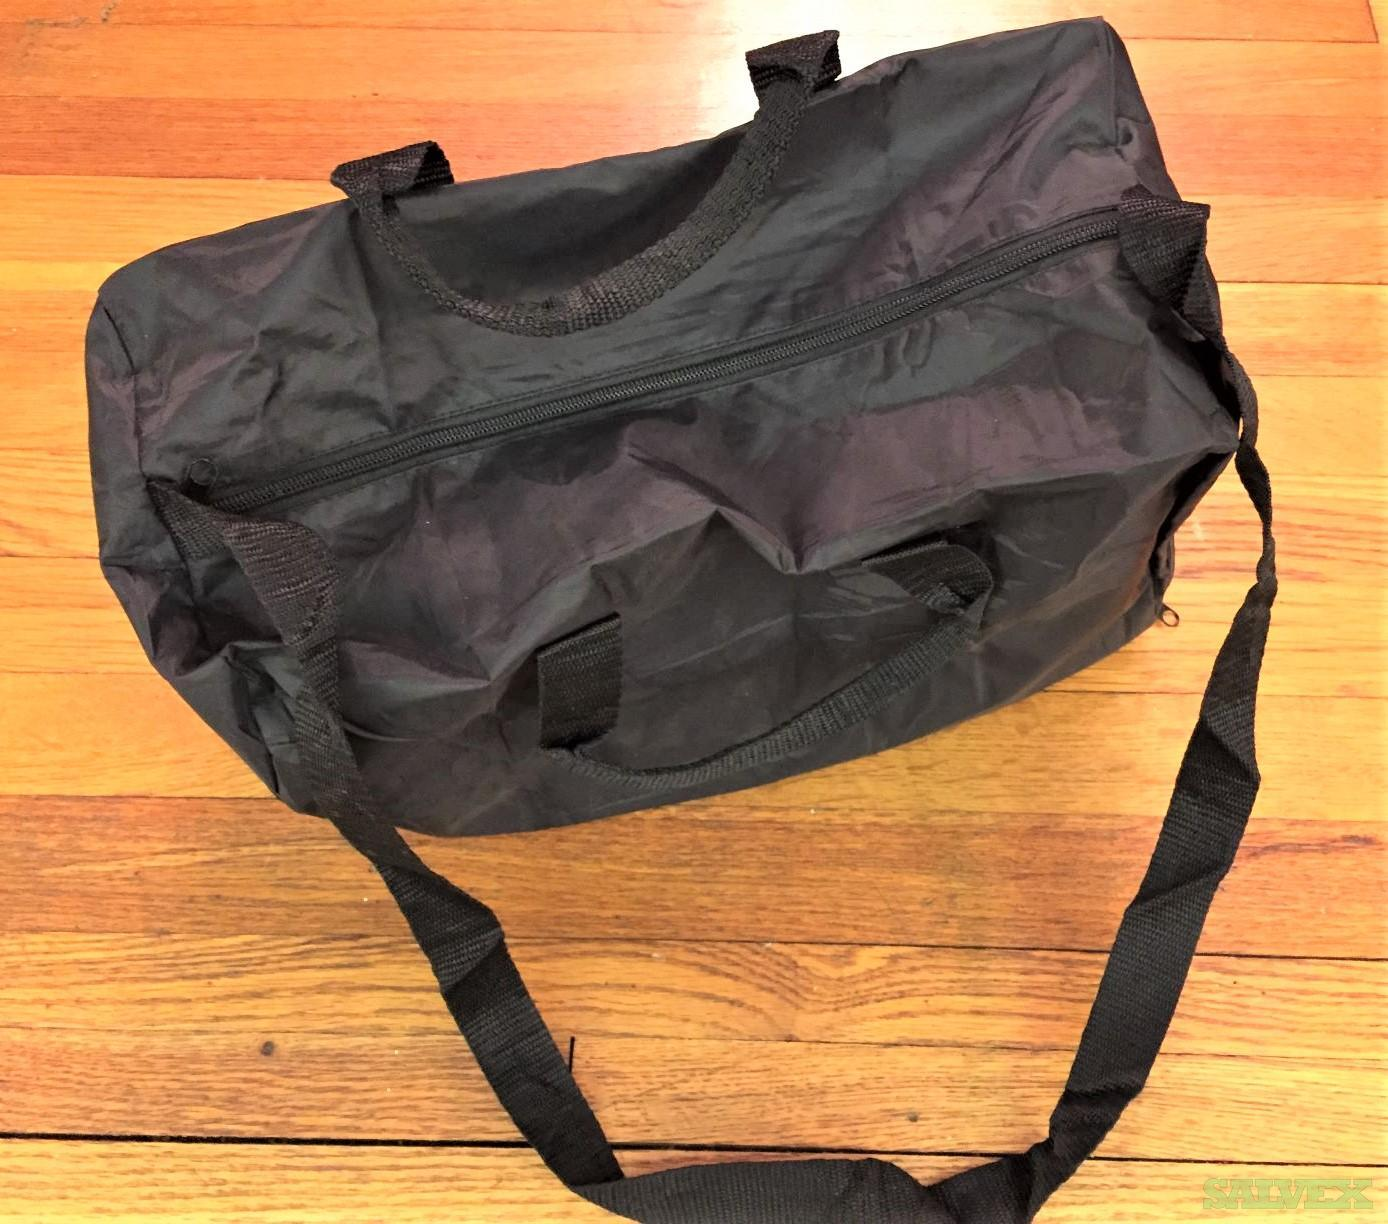 Sport Gym Travel Nylon Lightweight Duffle Bags with Shoe Pocket and Wet Pocket (30,000 Pieces)